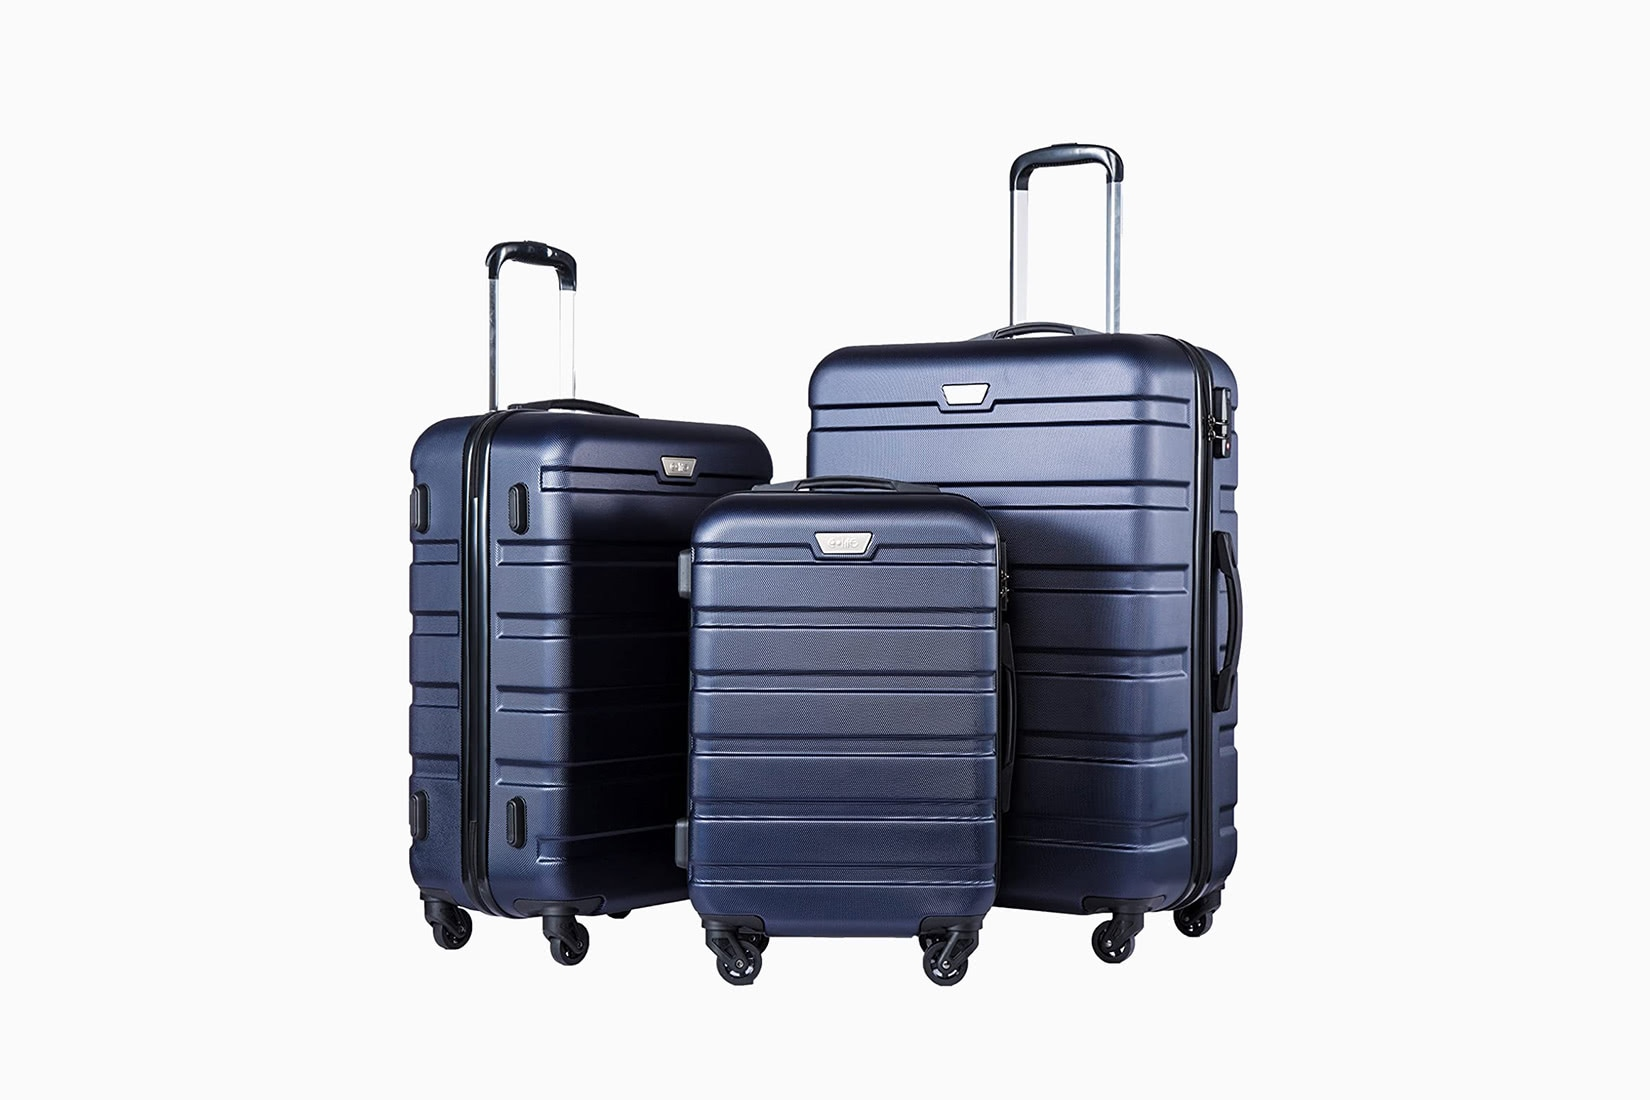 best luggage brands suitcase stylish coolife - Luxe Digital